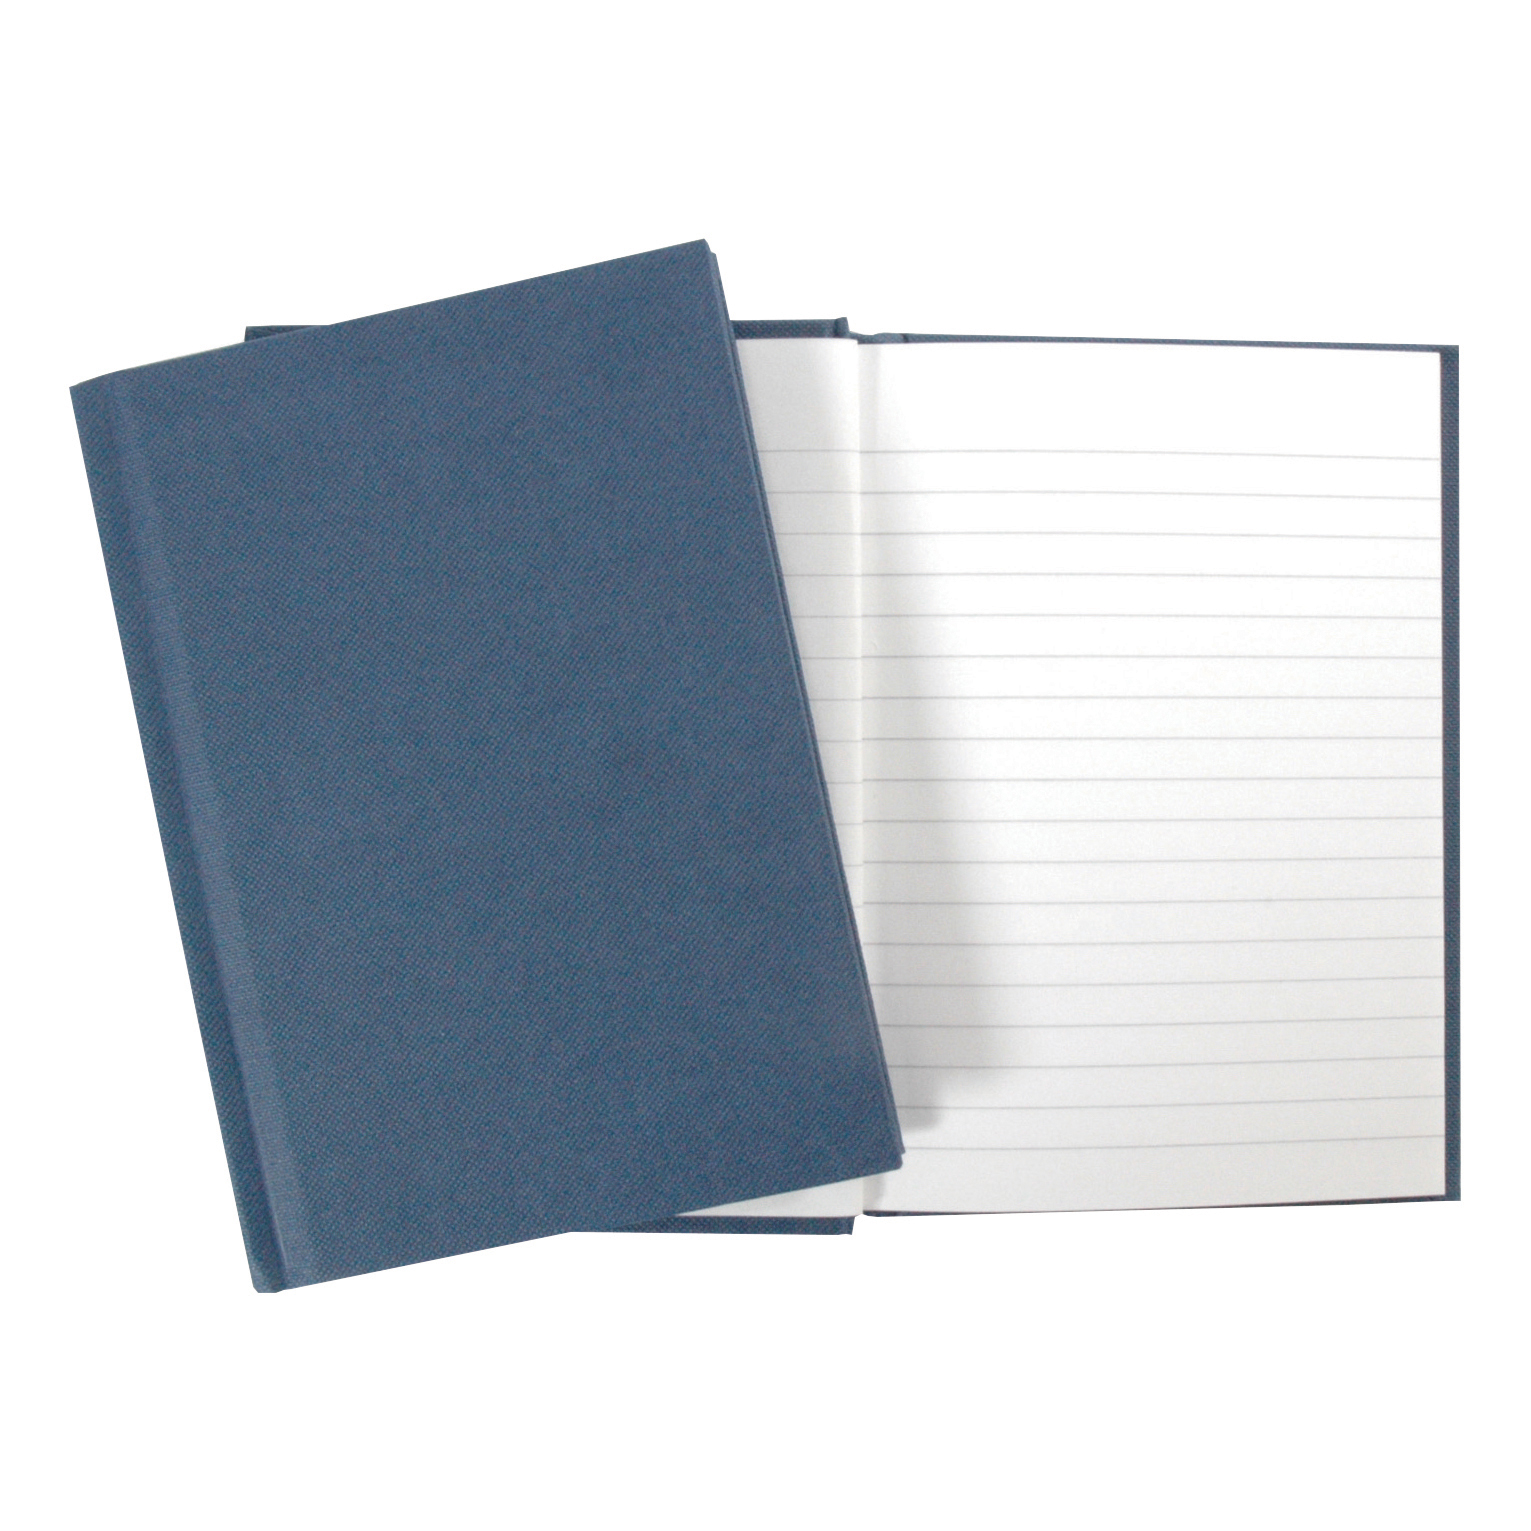 Notebooks Cambridge Notebook Casebound 70gsm Ruled 192pp A5 Blue Ref 100080493 Pack 5